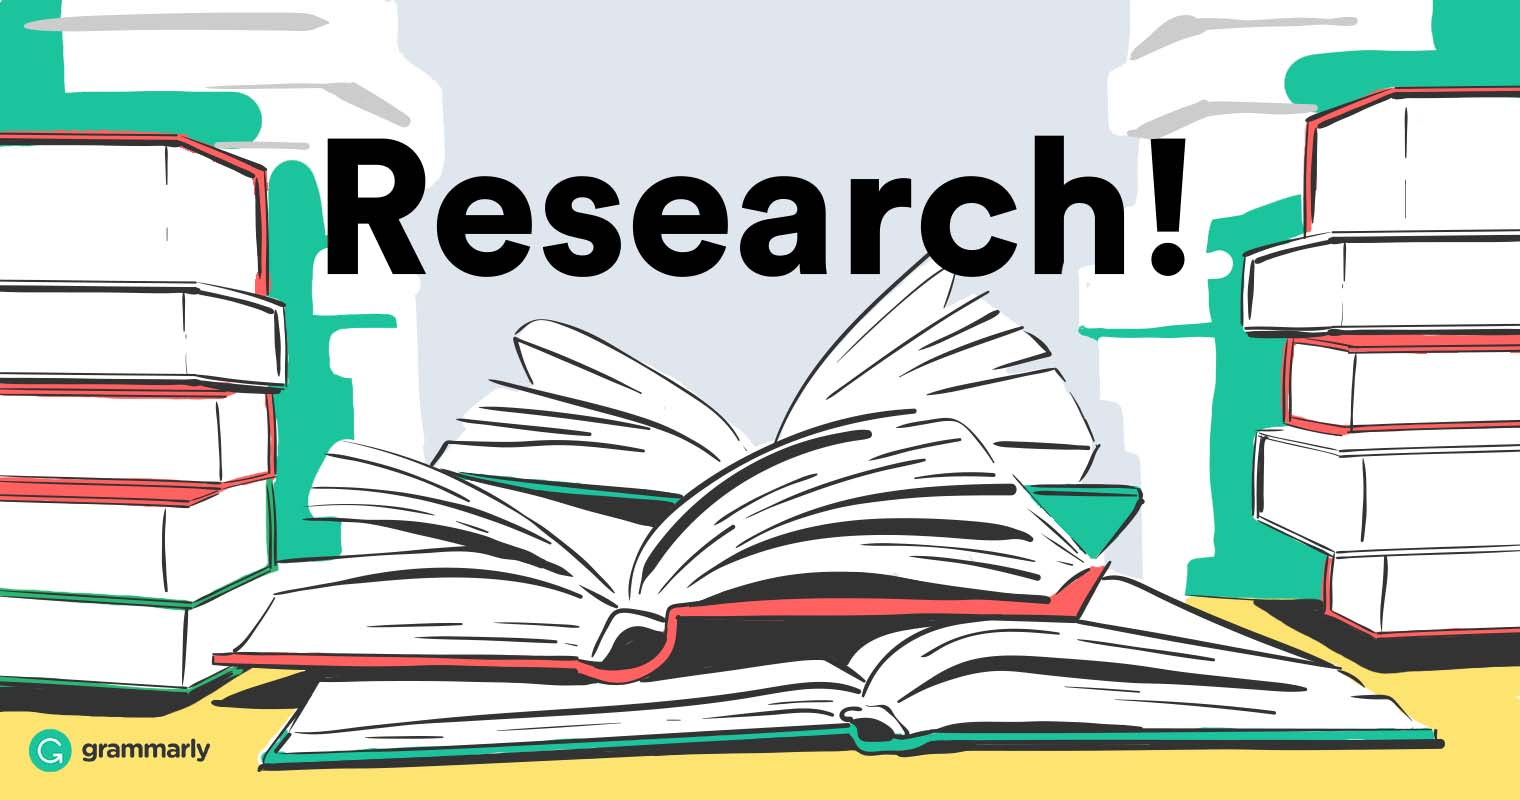 020 Best Research Paper Topics Ideas For Phenomenal 2017